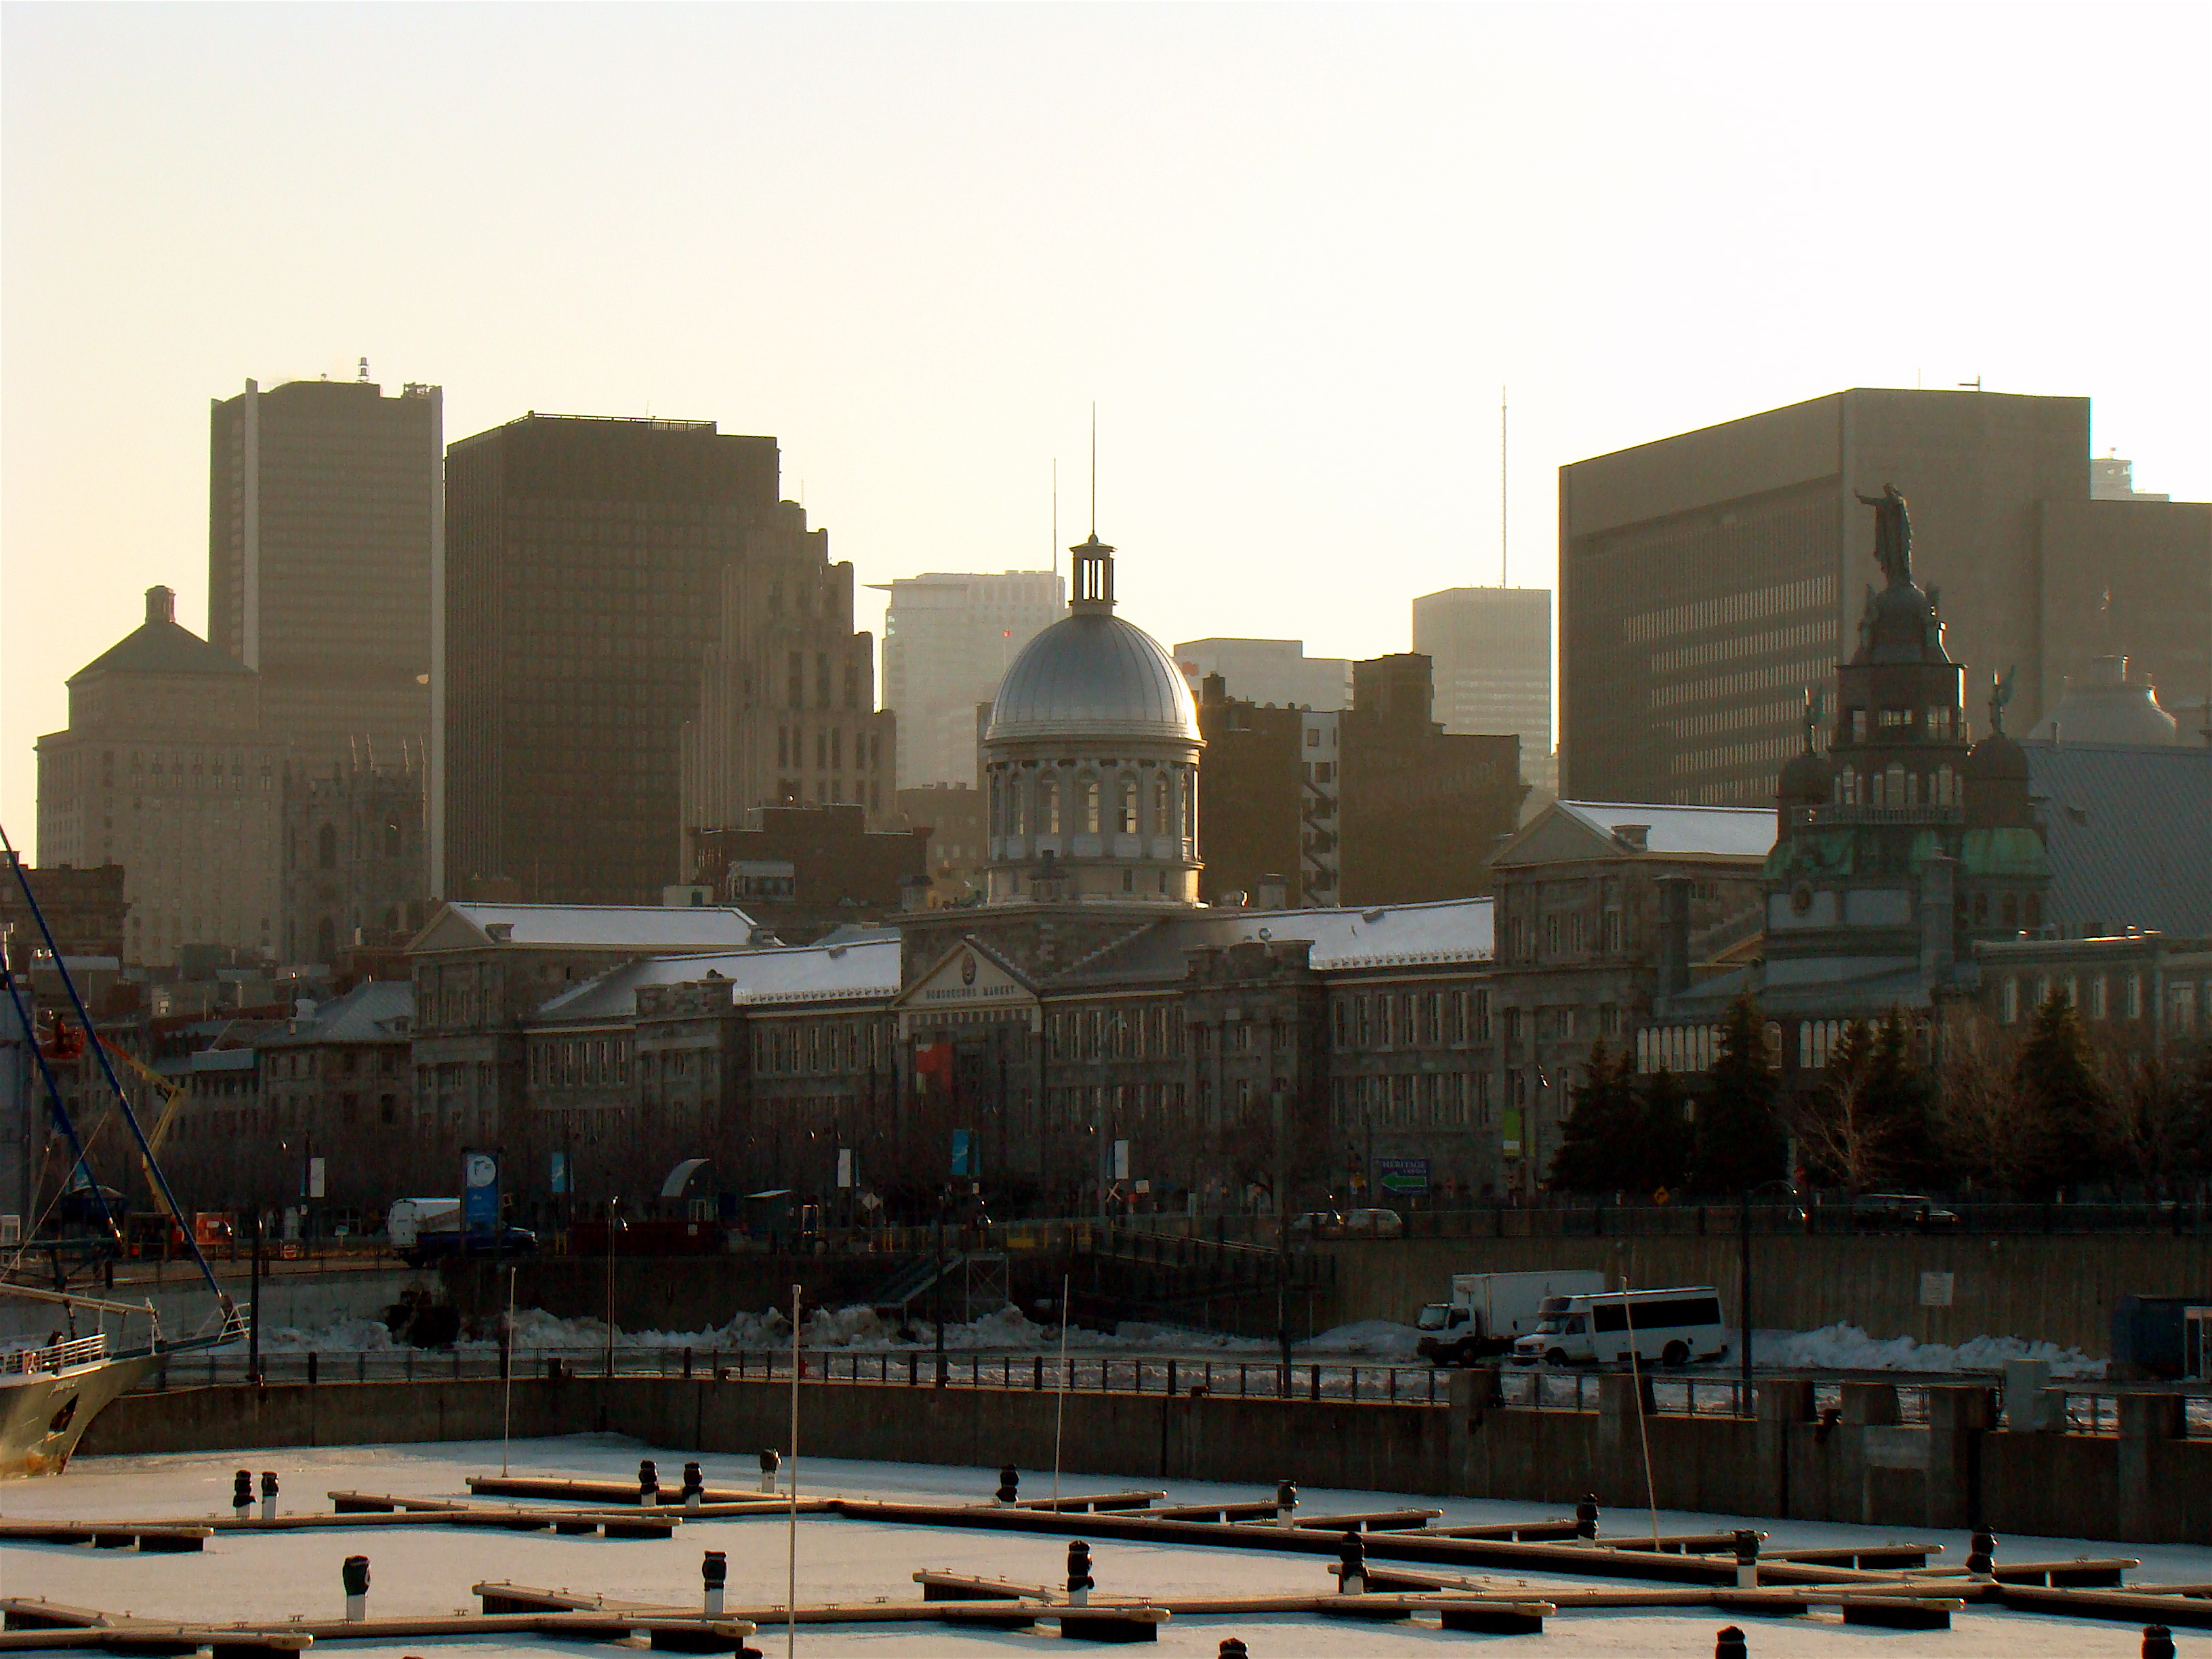 Bonsecours Market, Montral - Taylor C. Noakes, 2009